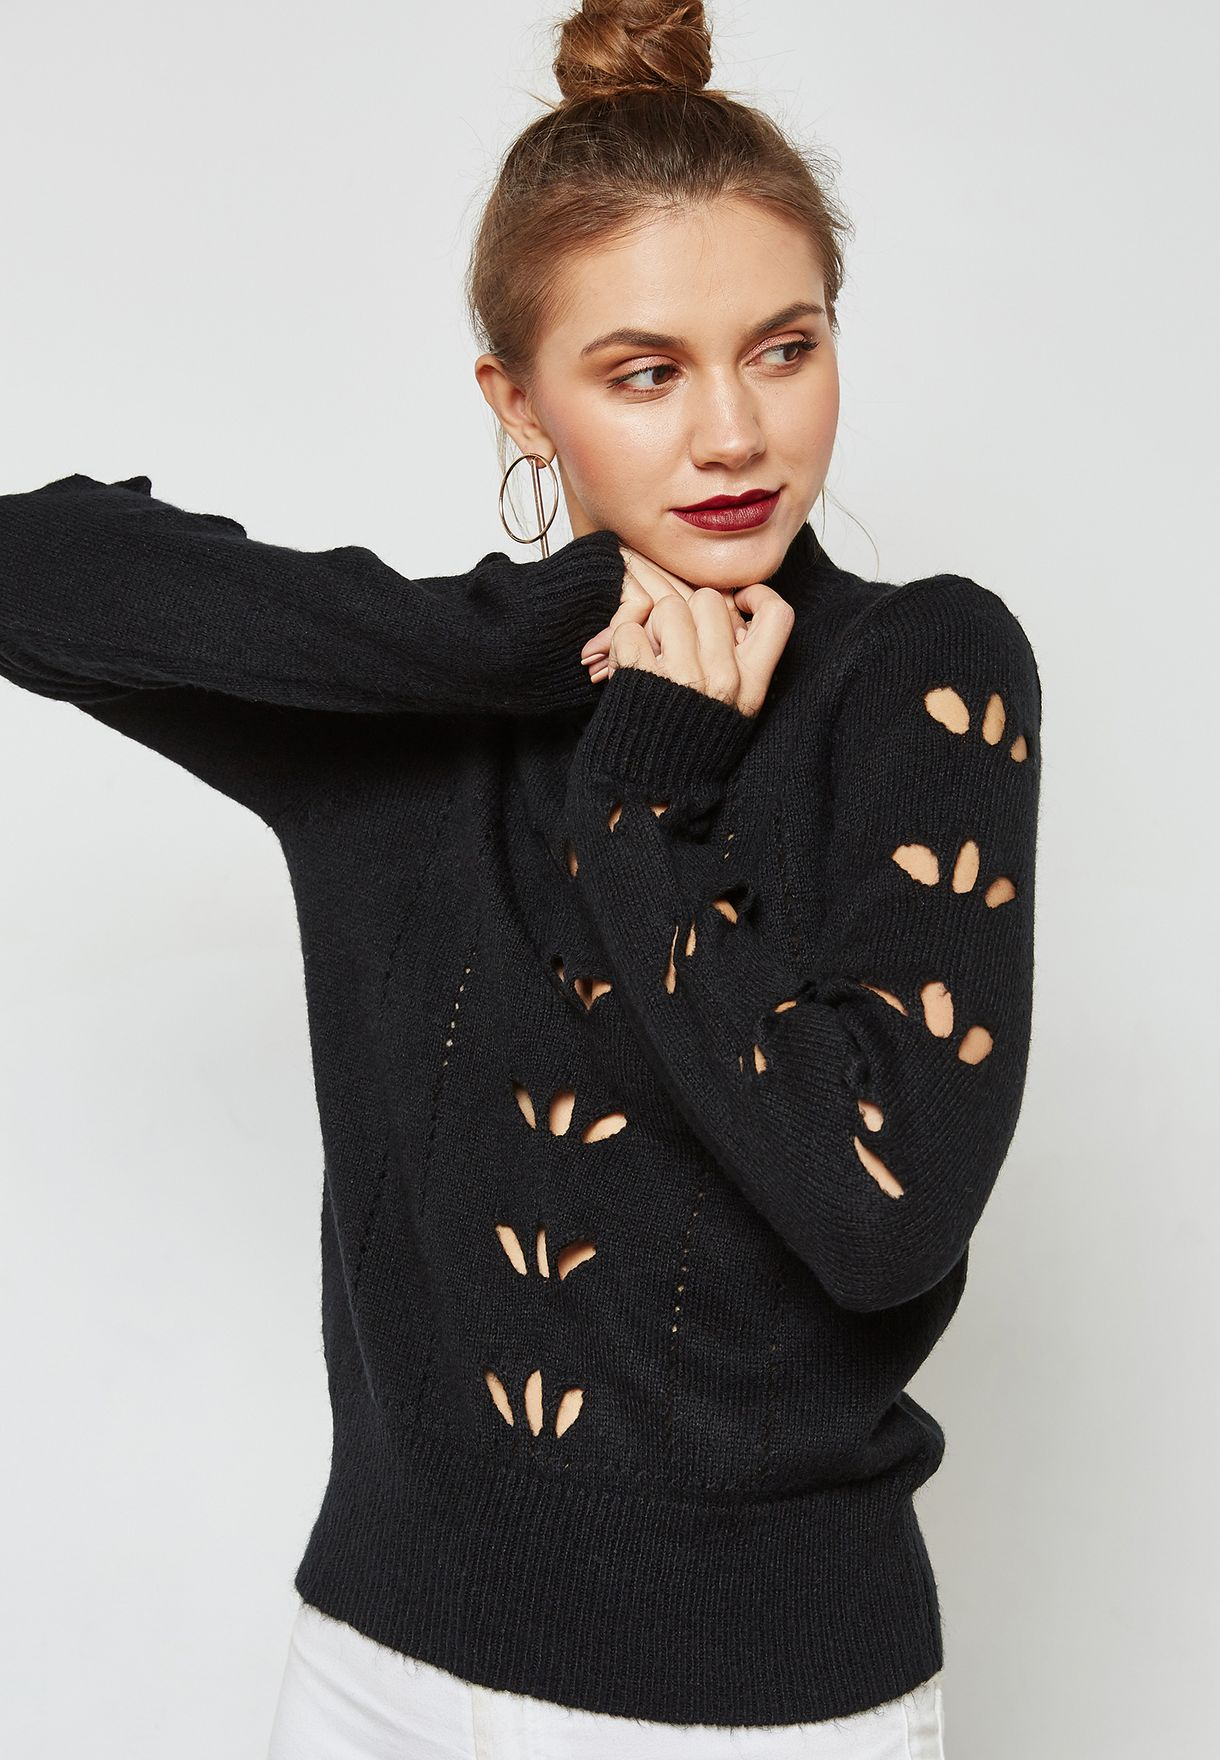 470f5b7cacd Shop Vero Moda black High Neck Sweater 10189166 for Women in UAE -  VE758AT33YWC